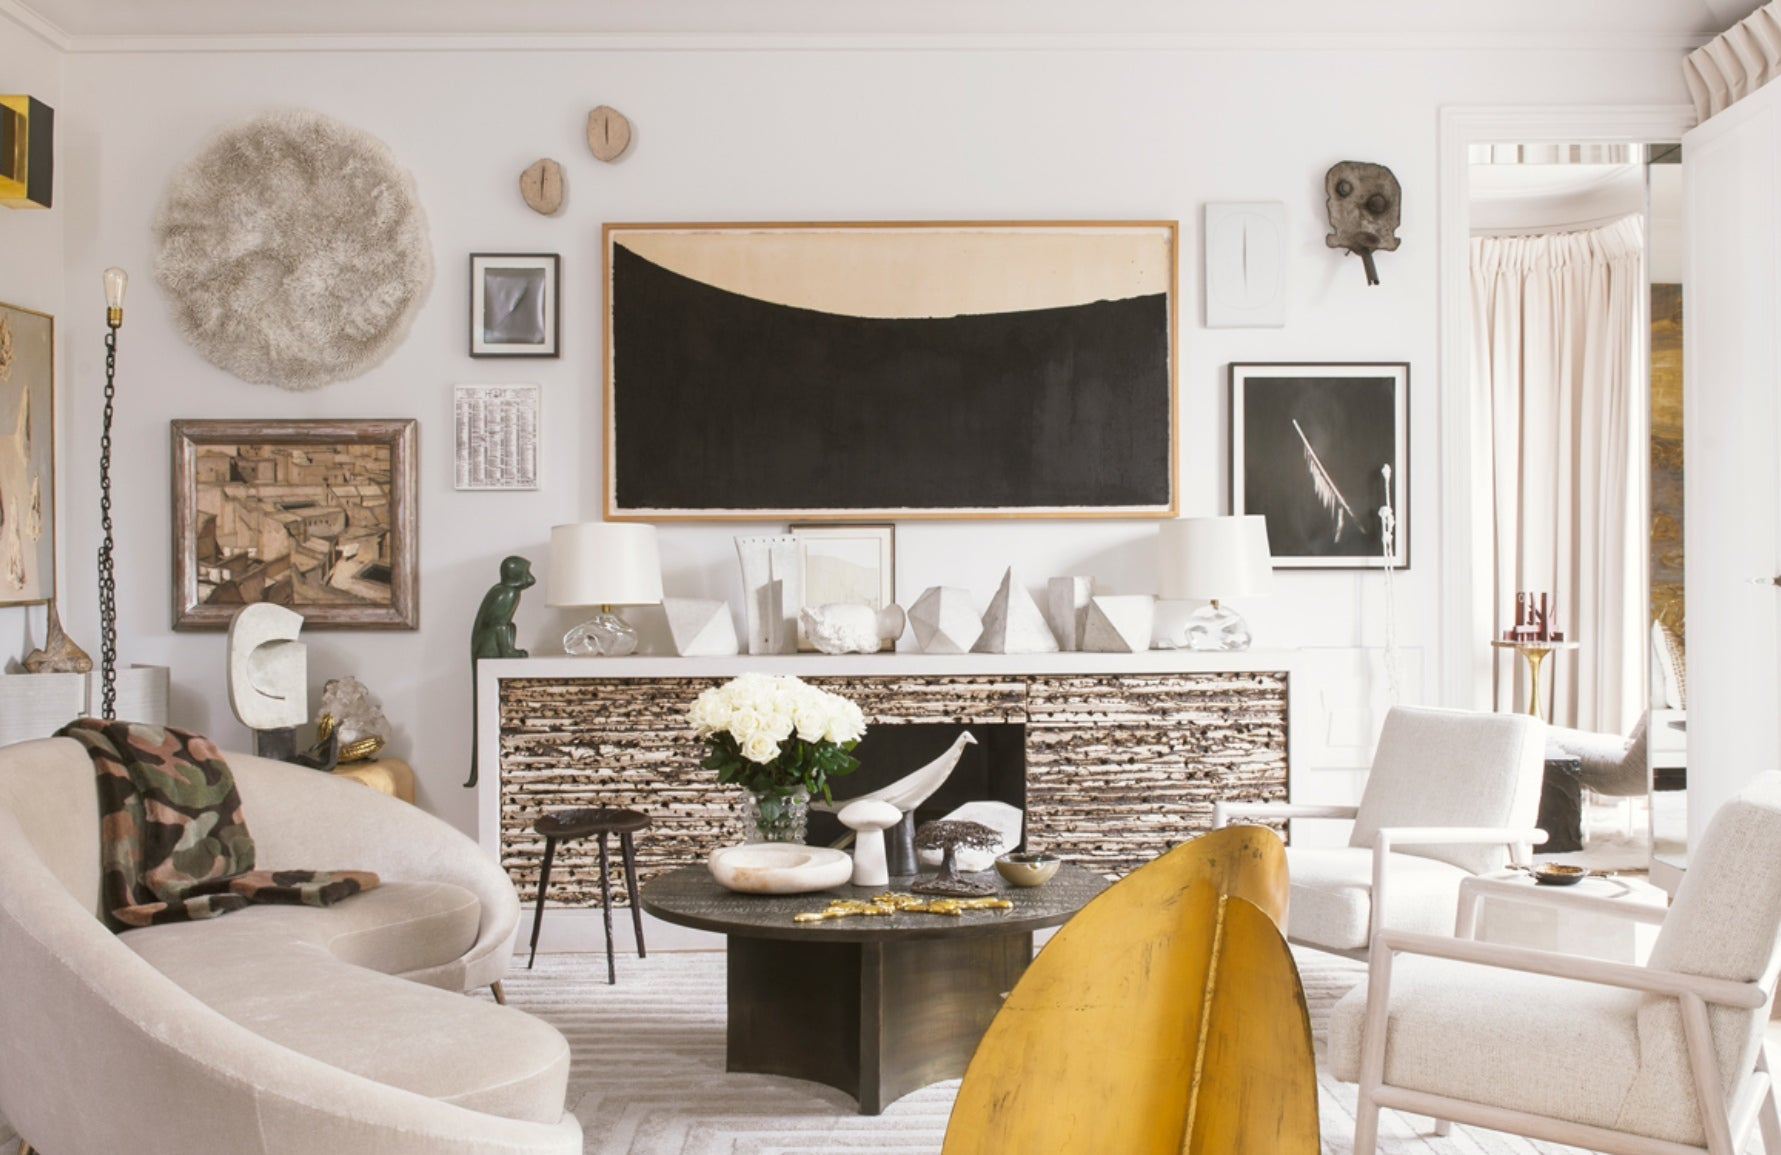 Top 10 French Interior Designers To Know | LuxDeco.com